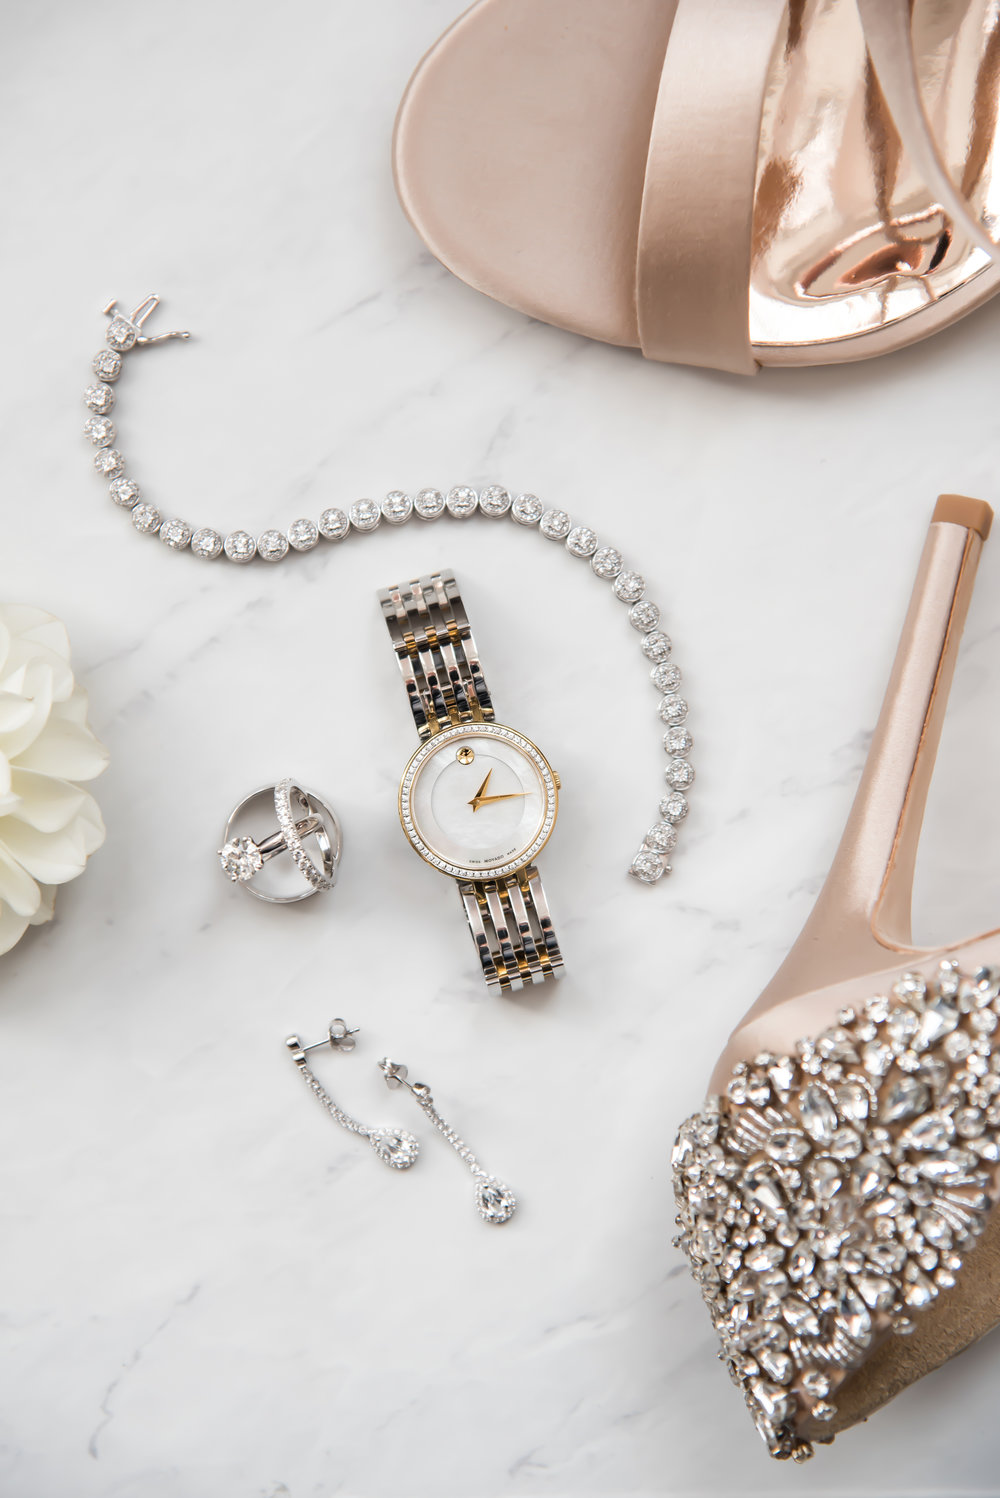 Grooms-Bridesmaid-Groomsman Gift Ideas — The Overwhelmed Bride Wedding Blog